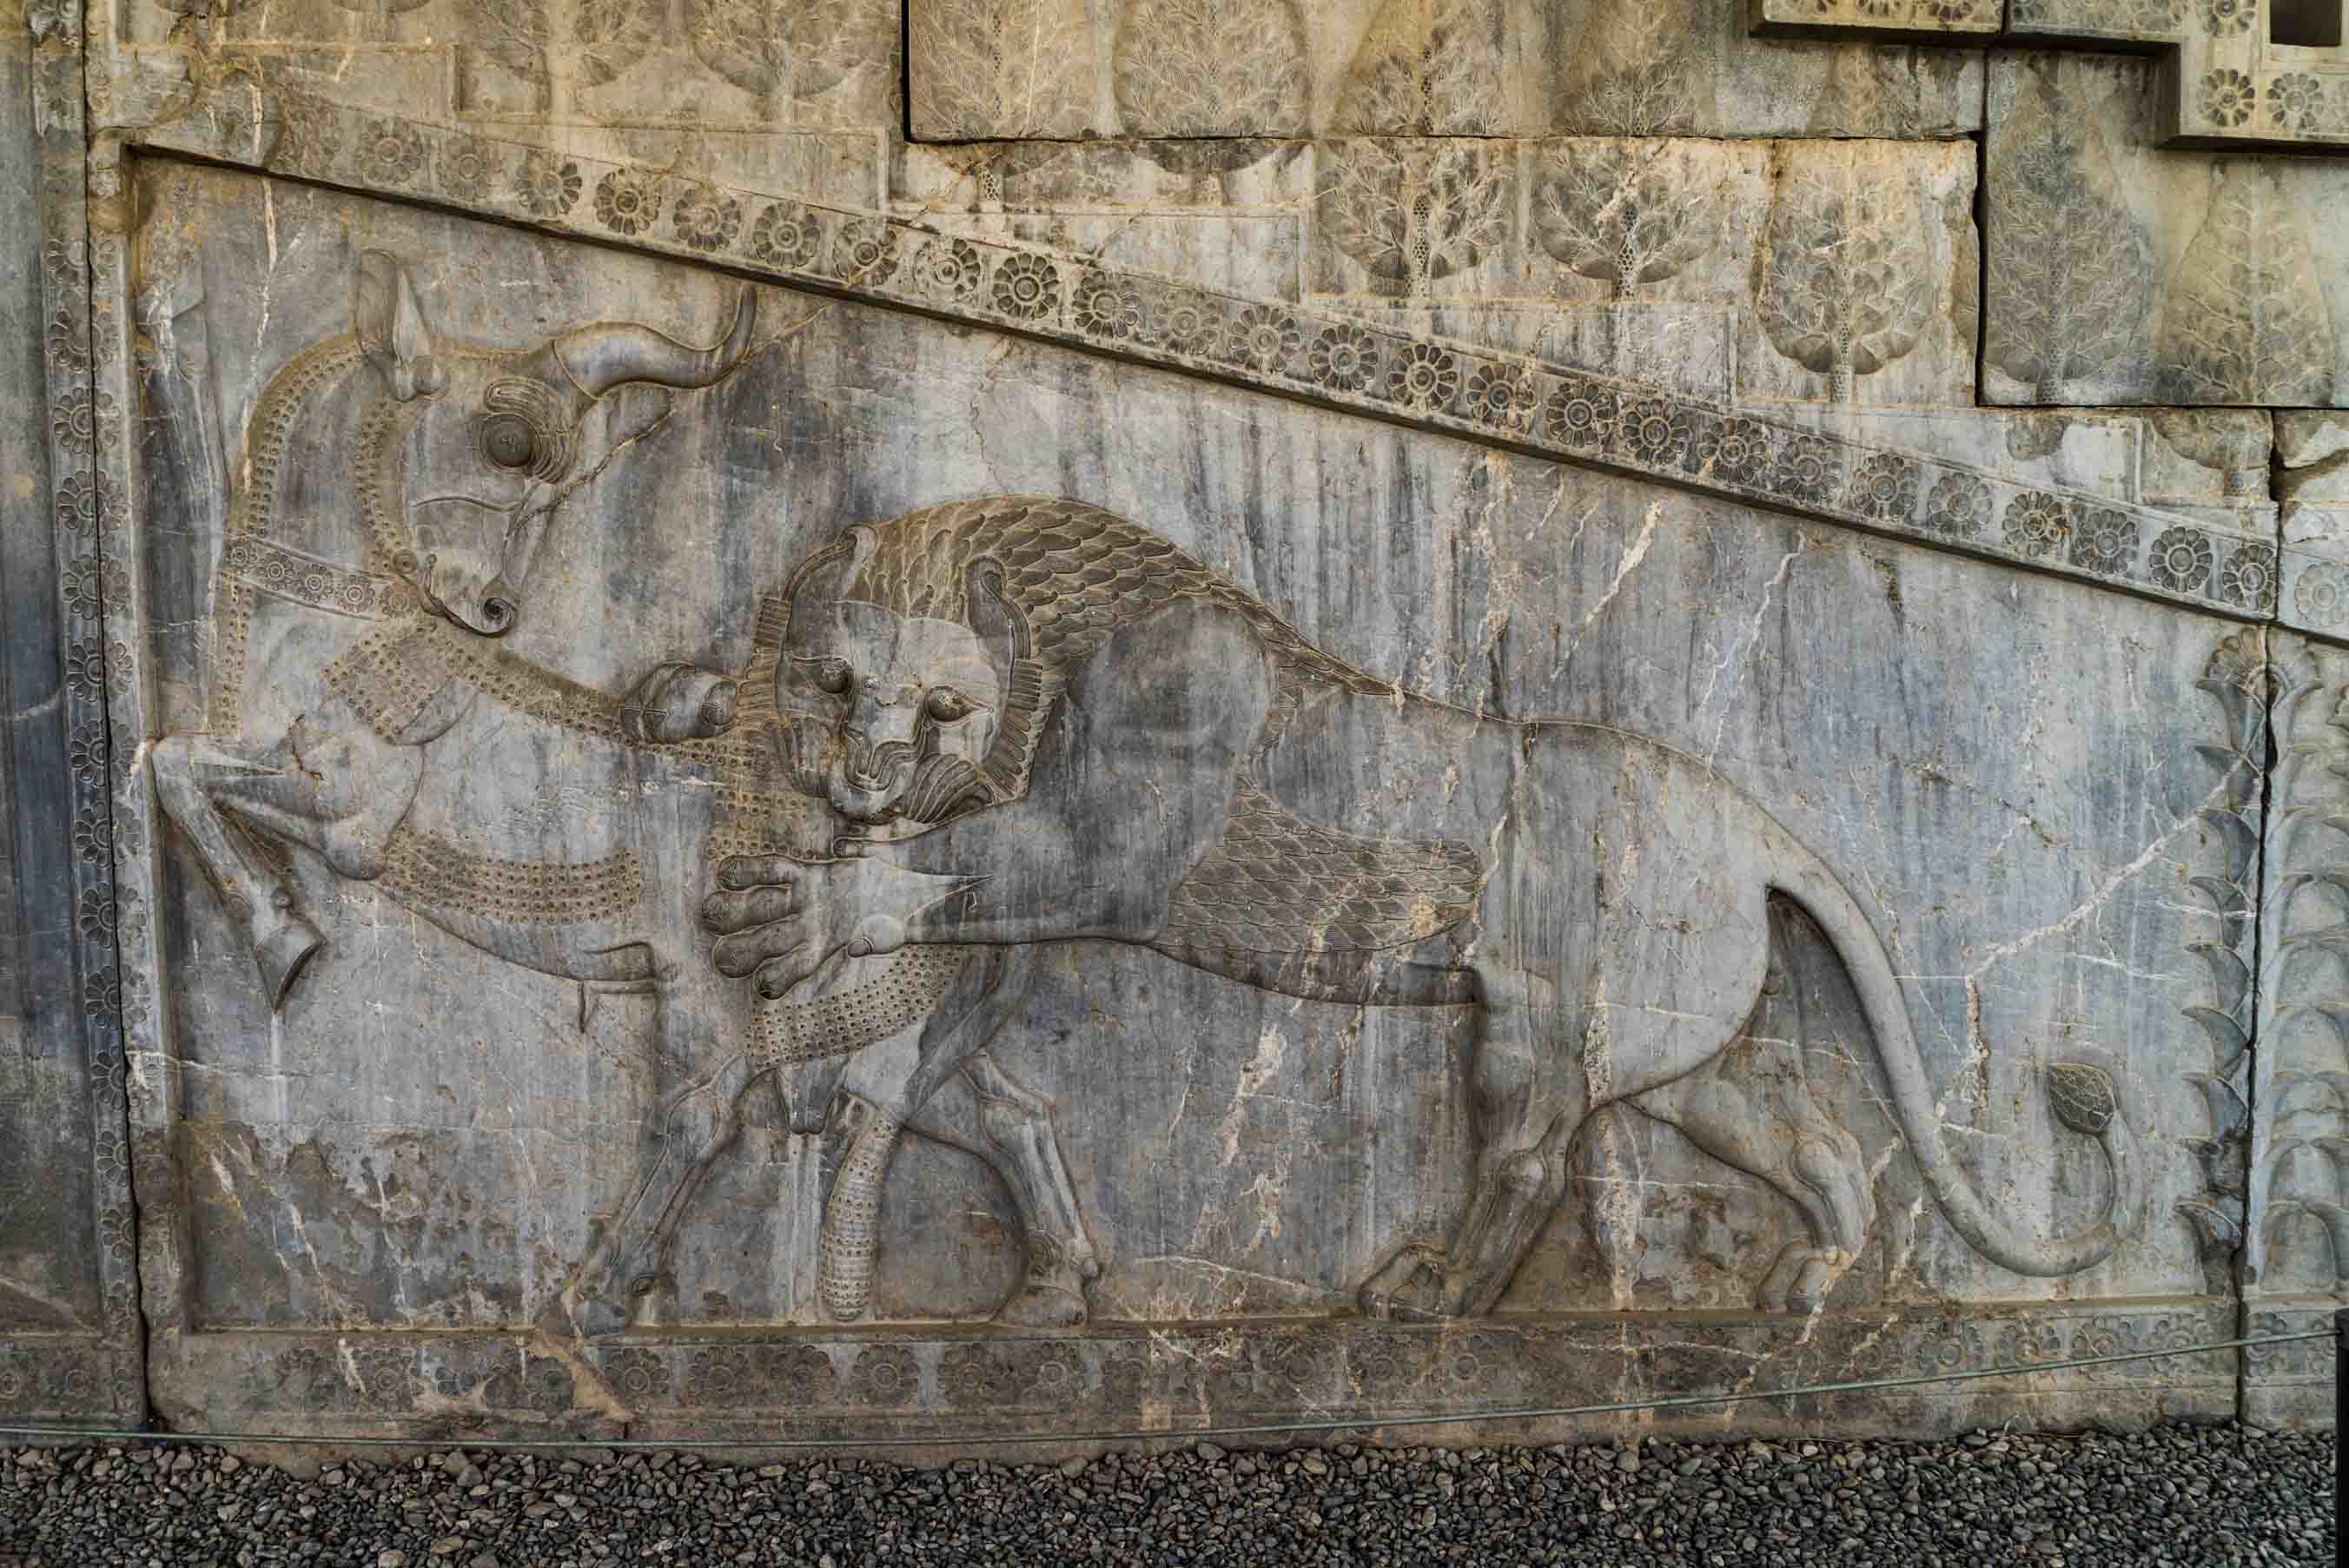 Persepolis Iran - The lion attacking the bull